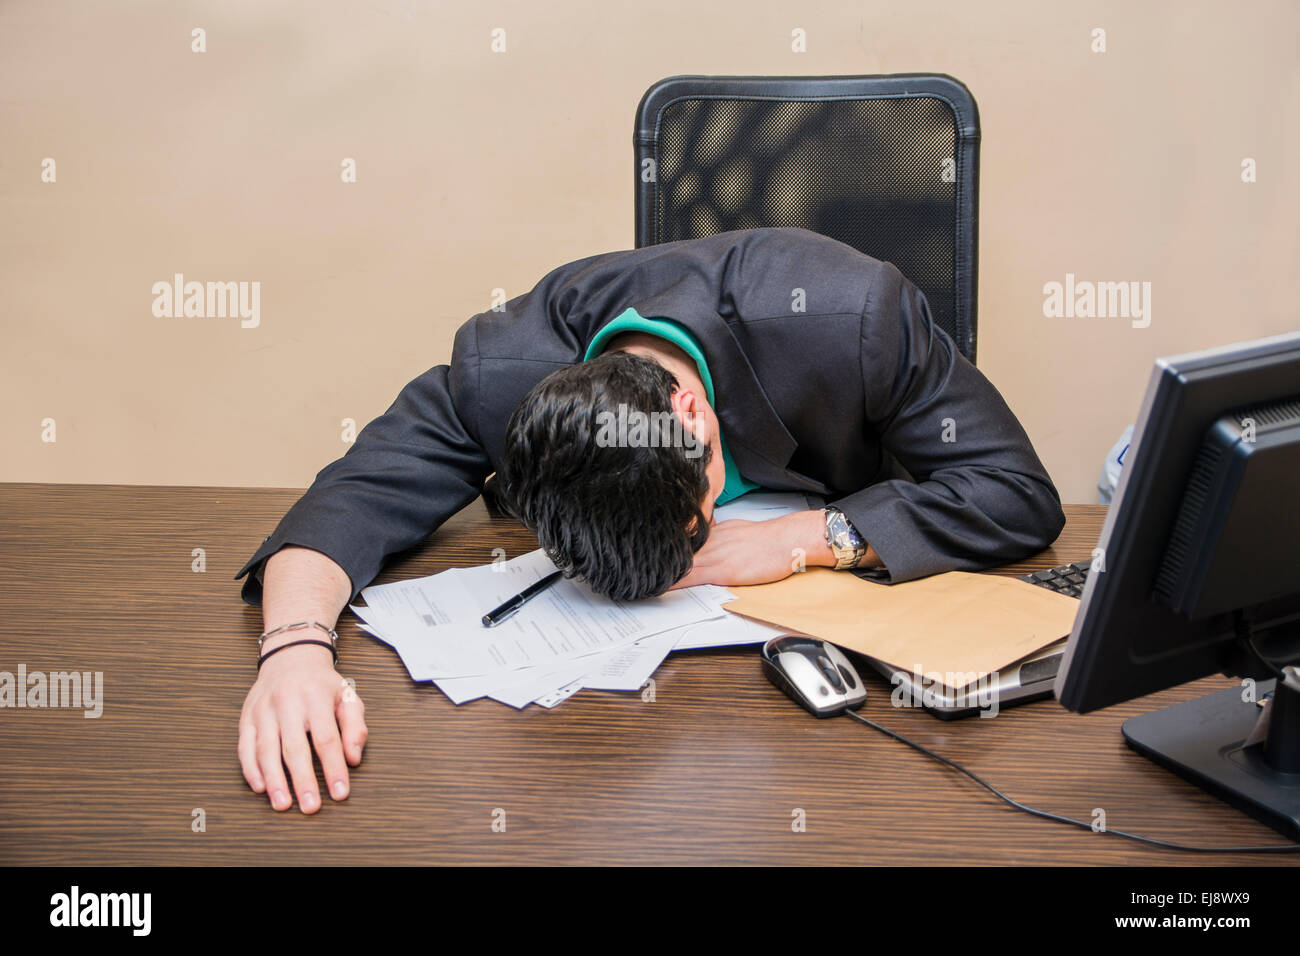 Overworked, tired young businessman sleeping on his desk  in office, in front of computer over some documents - Stock Image